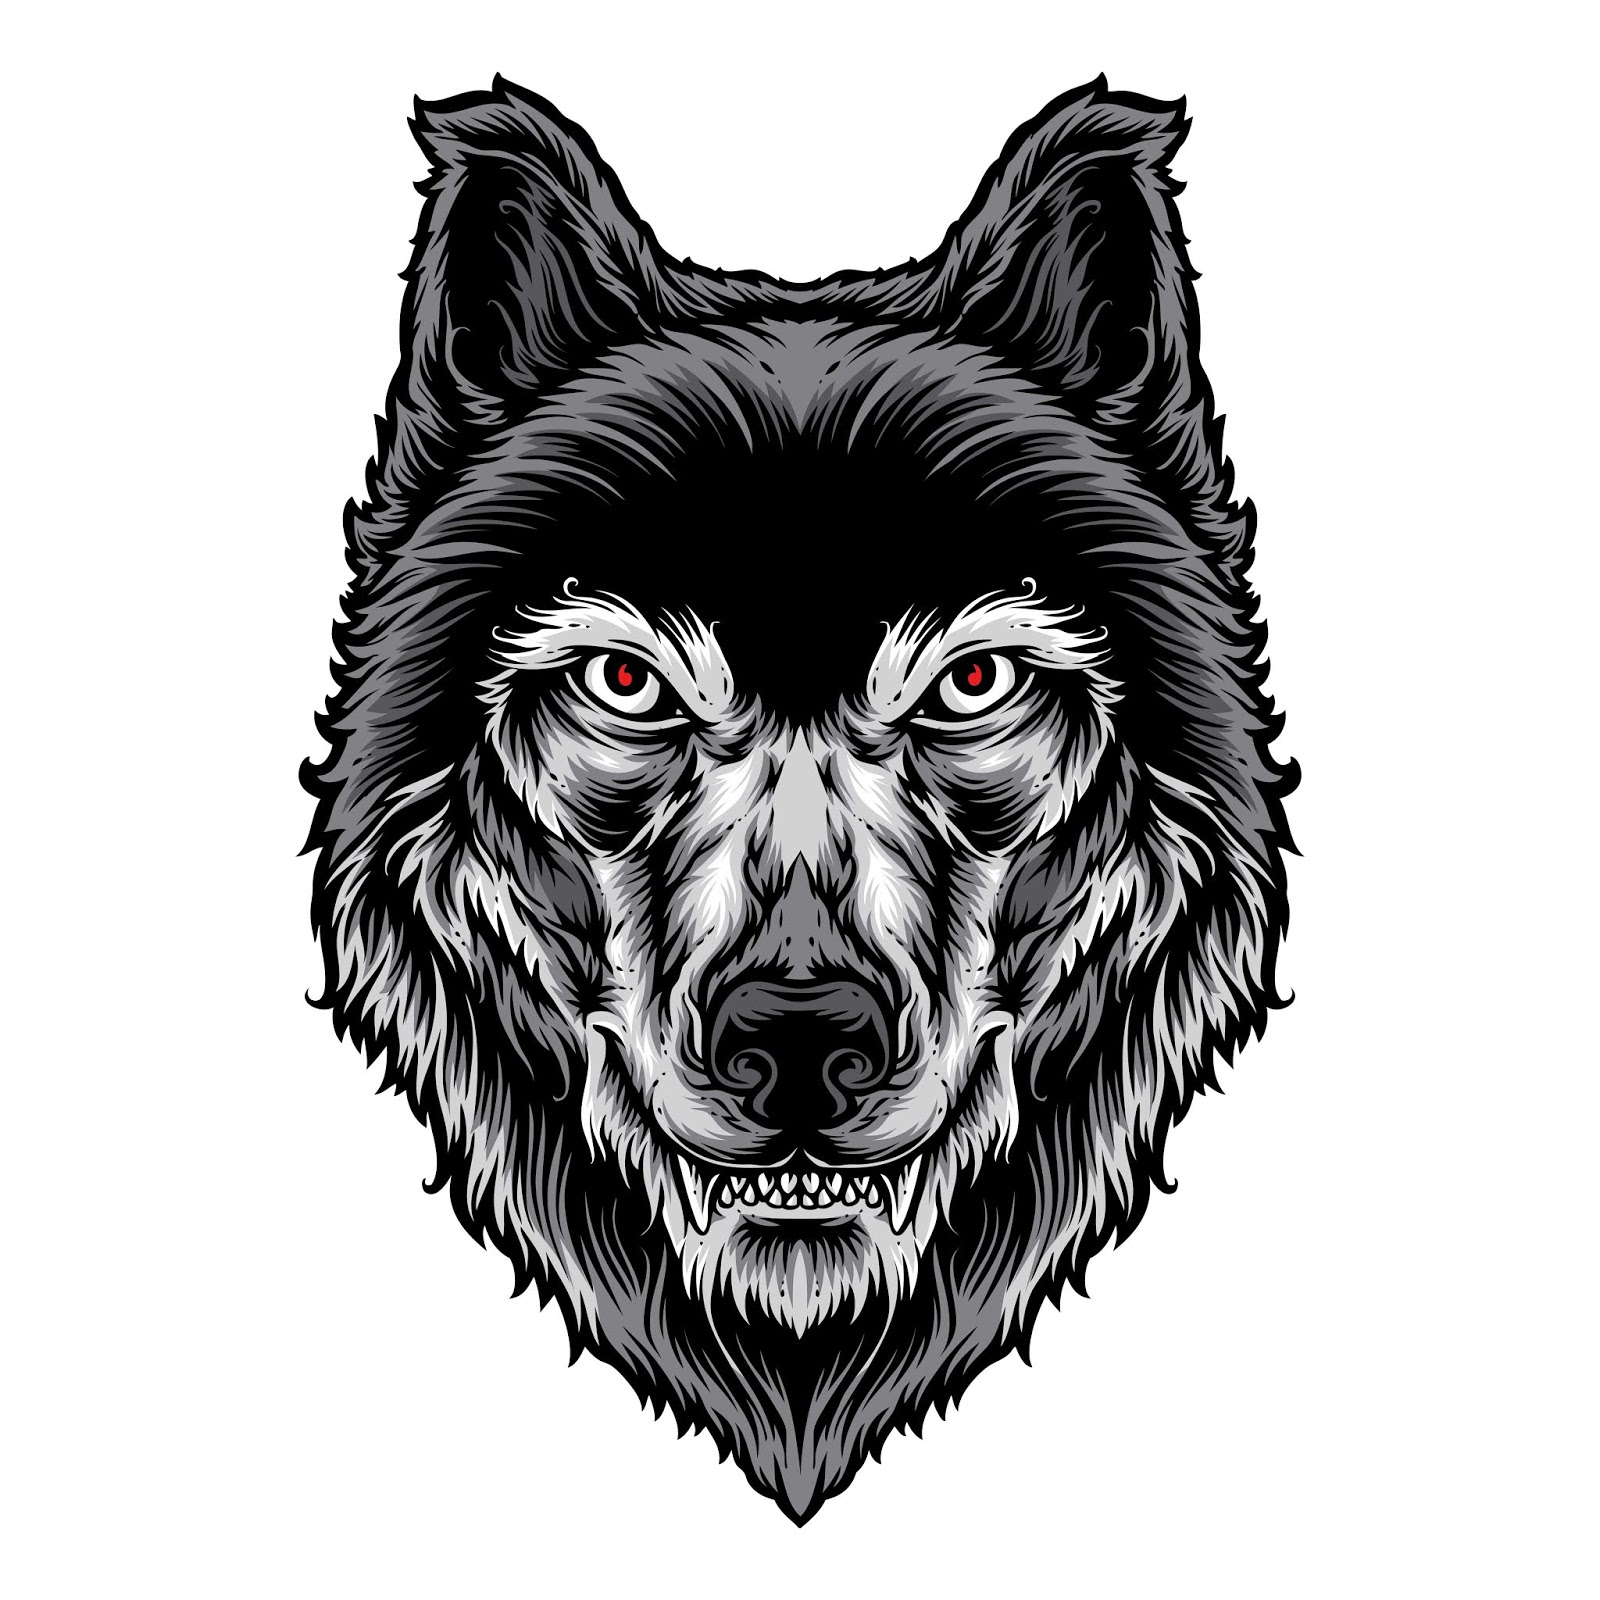 Wolf Head Vector Logo Free Download Vector CDR, AI, EPS and PNG Formats